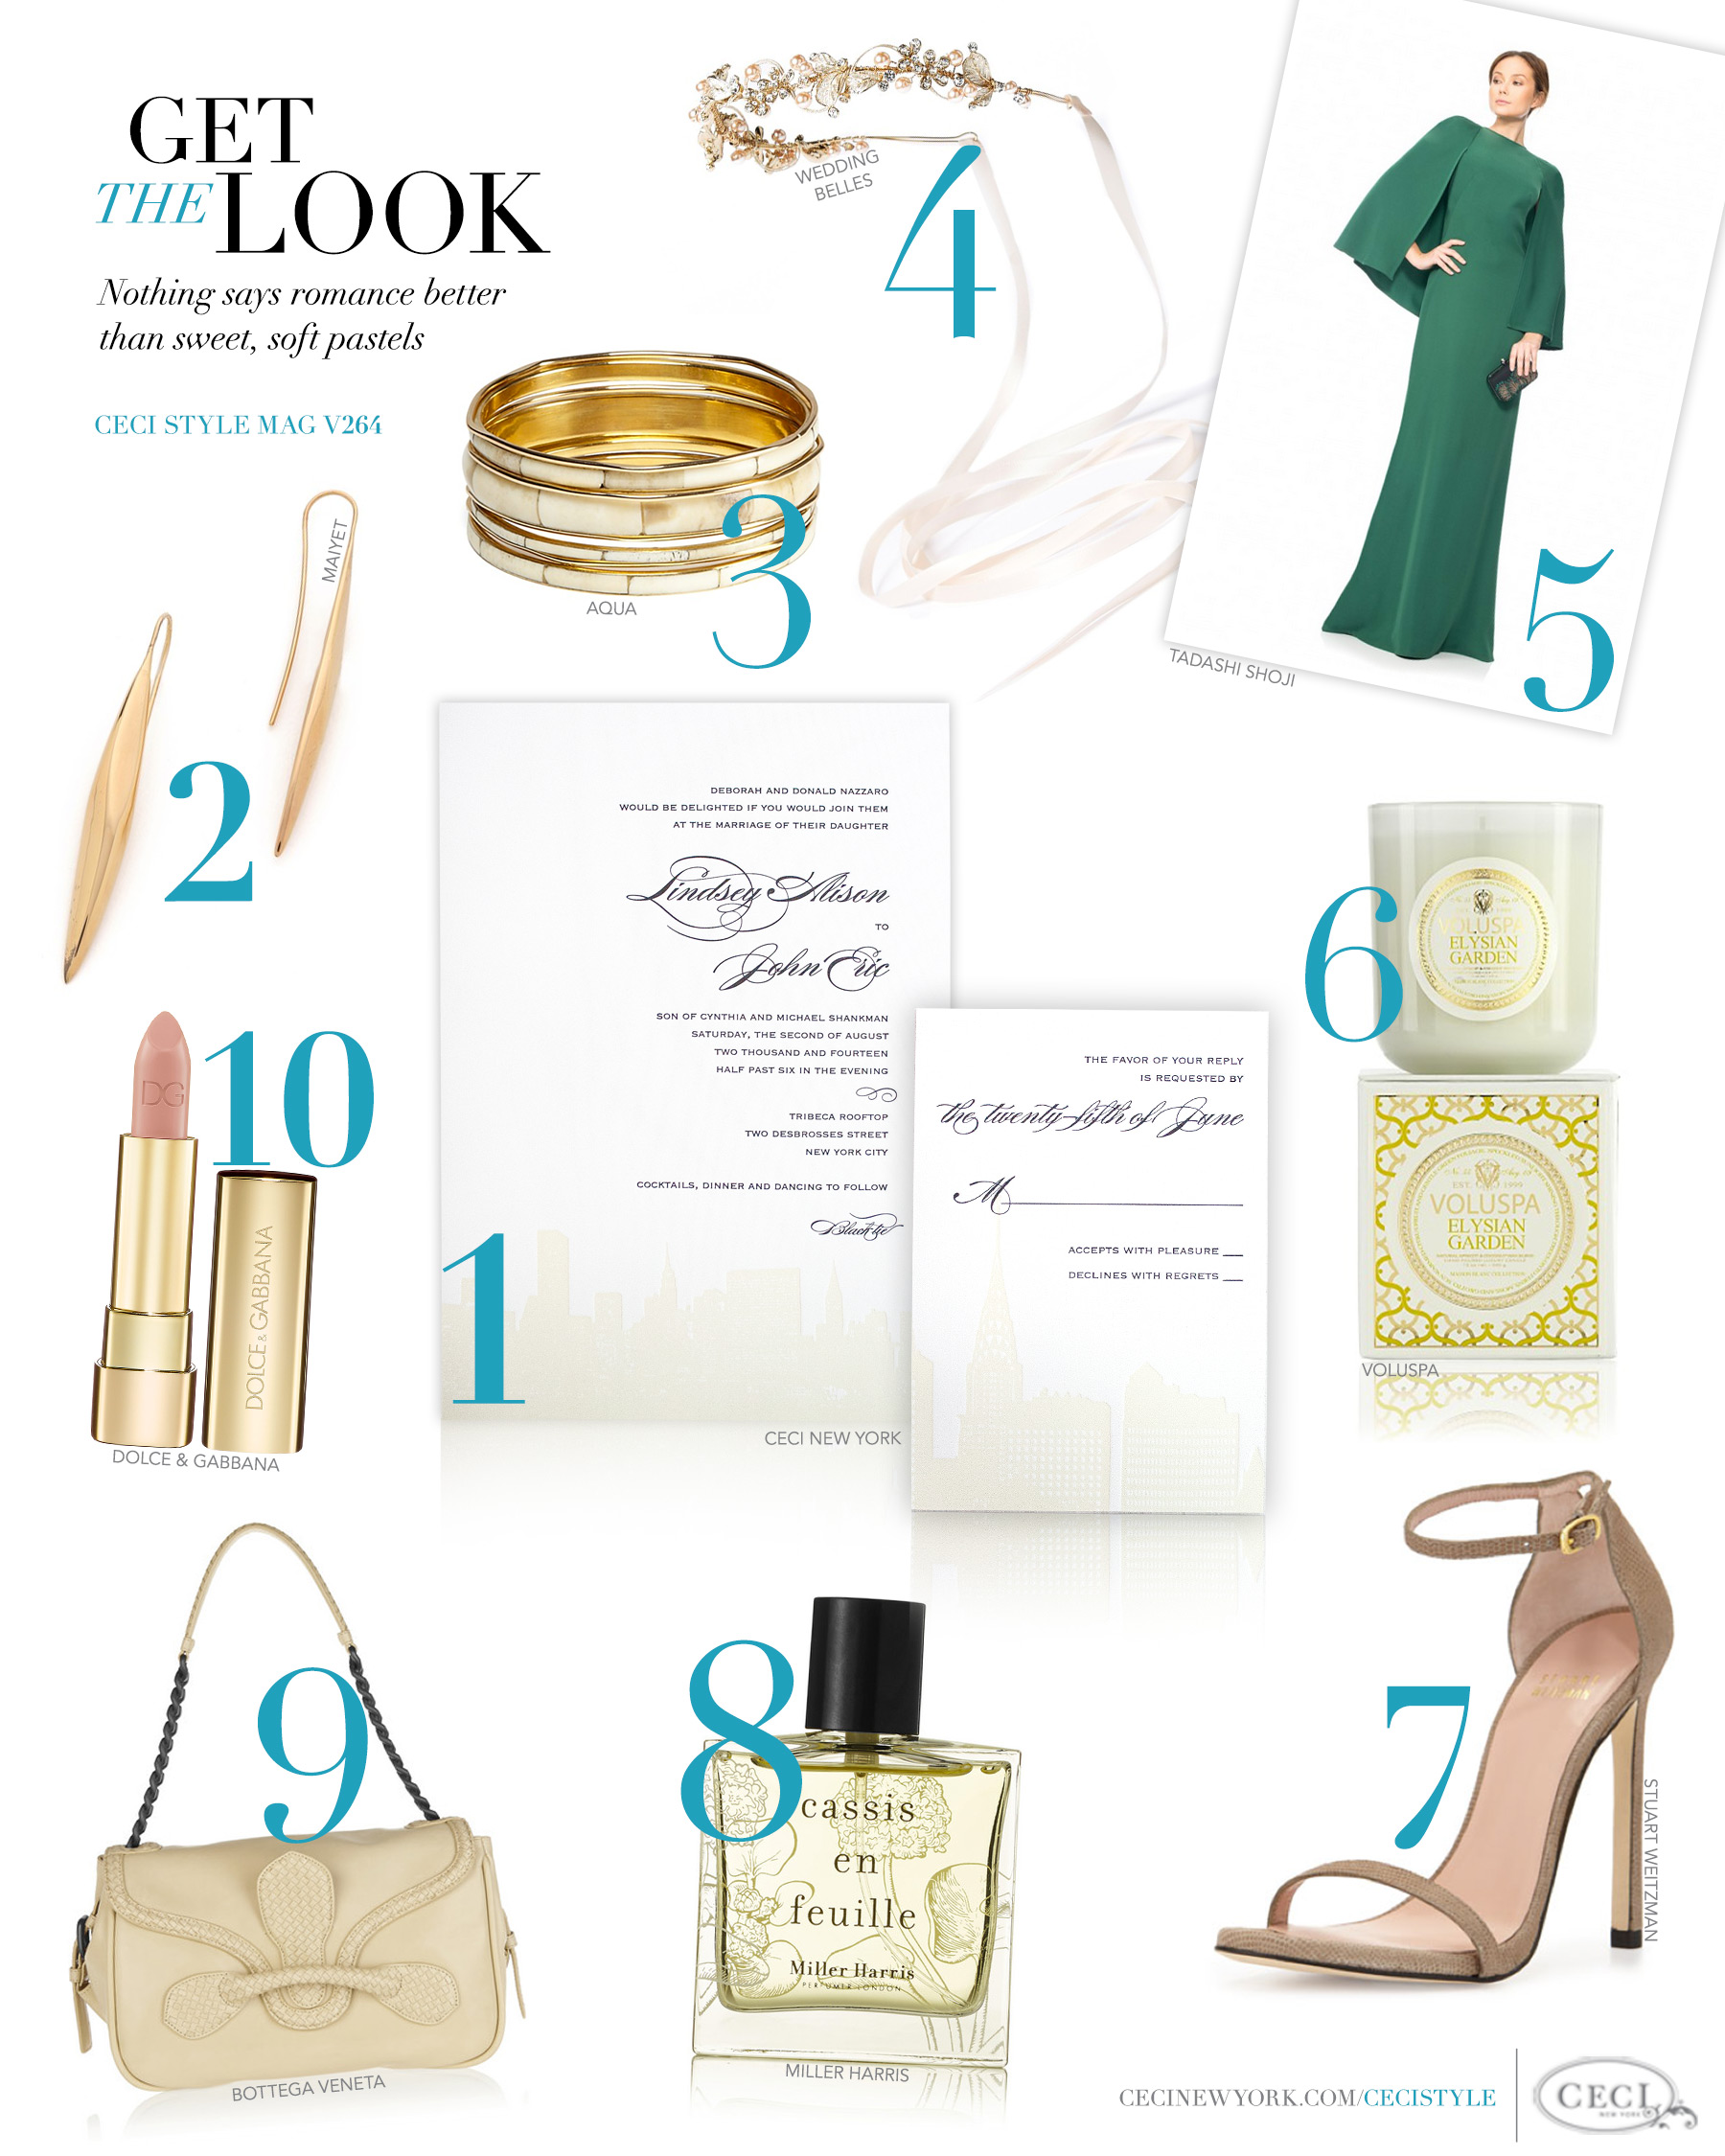 CeciStyle Magazine v264: Get The Look - Rooftop Romance - Nothing says romance better than sweet, soft pastels - Luxury Wedding Invitations by Ceci New York - fashion, style, ceci new york, maiyet, earrings, aqua, tanya bangles, tadashi shoji, gown, voluspa, stuart weitzman, sandals, miller harris, cassis en feuille, eau de parfum, bottega veneta, bag, dolce & gabbana, lipstick